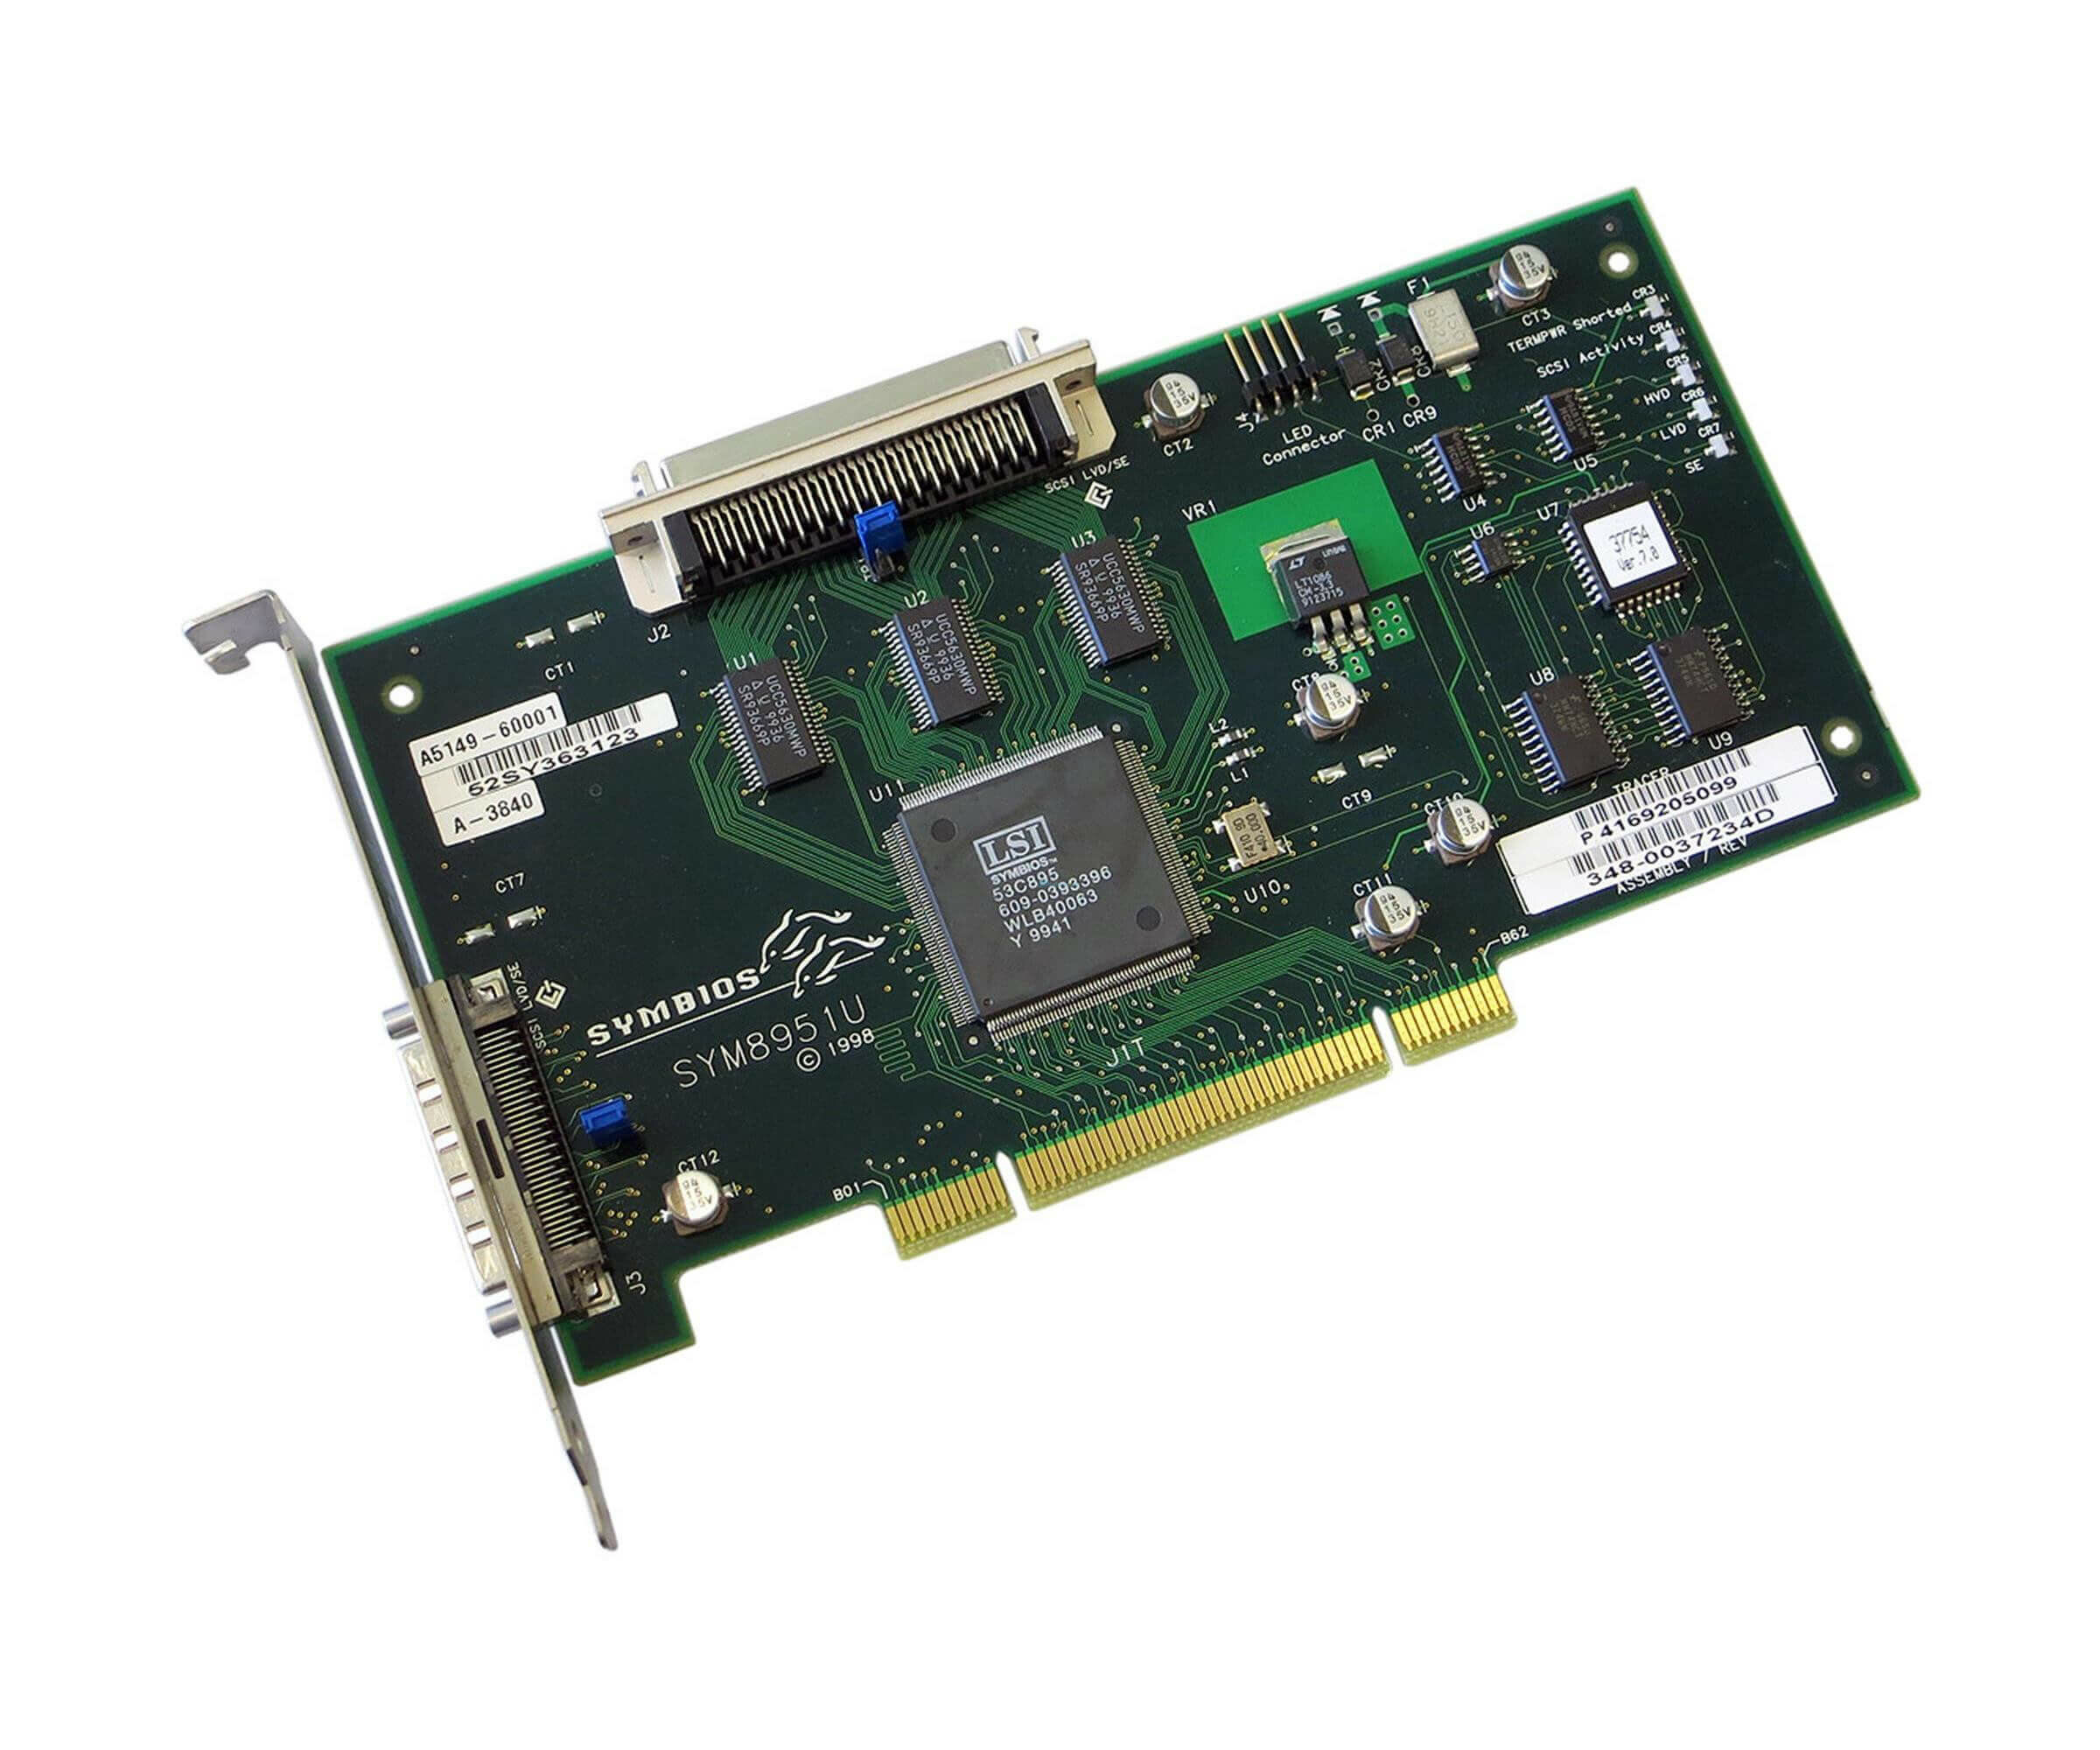 HP A5149-60001 - PCI Ultra2 Single Channel LVD/SE SCSI Adapter